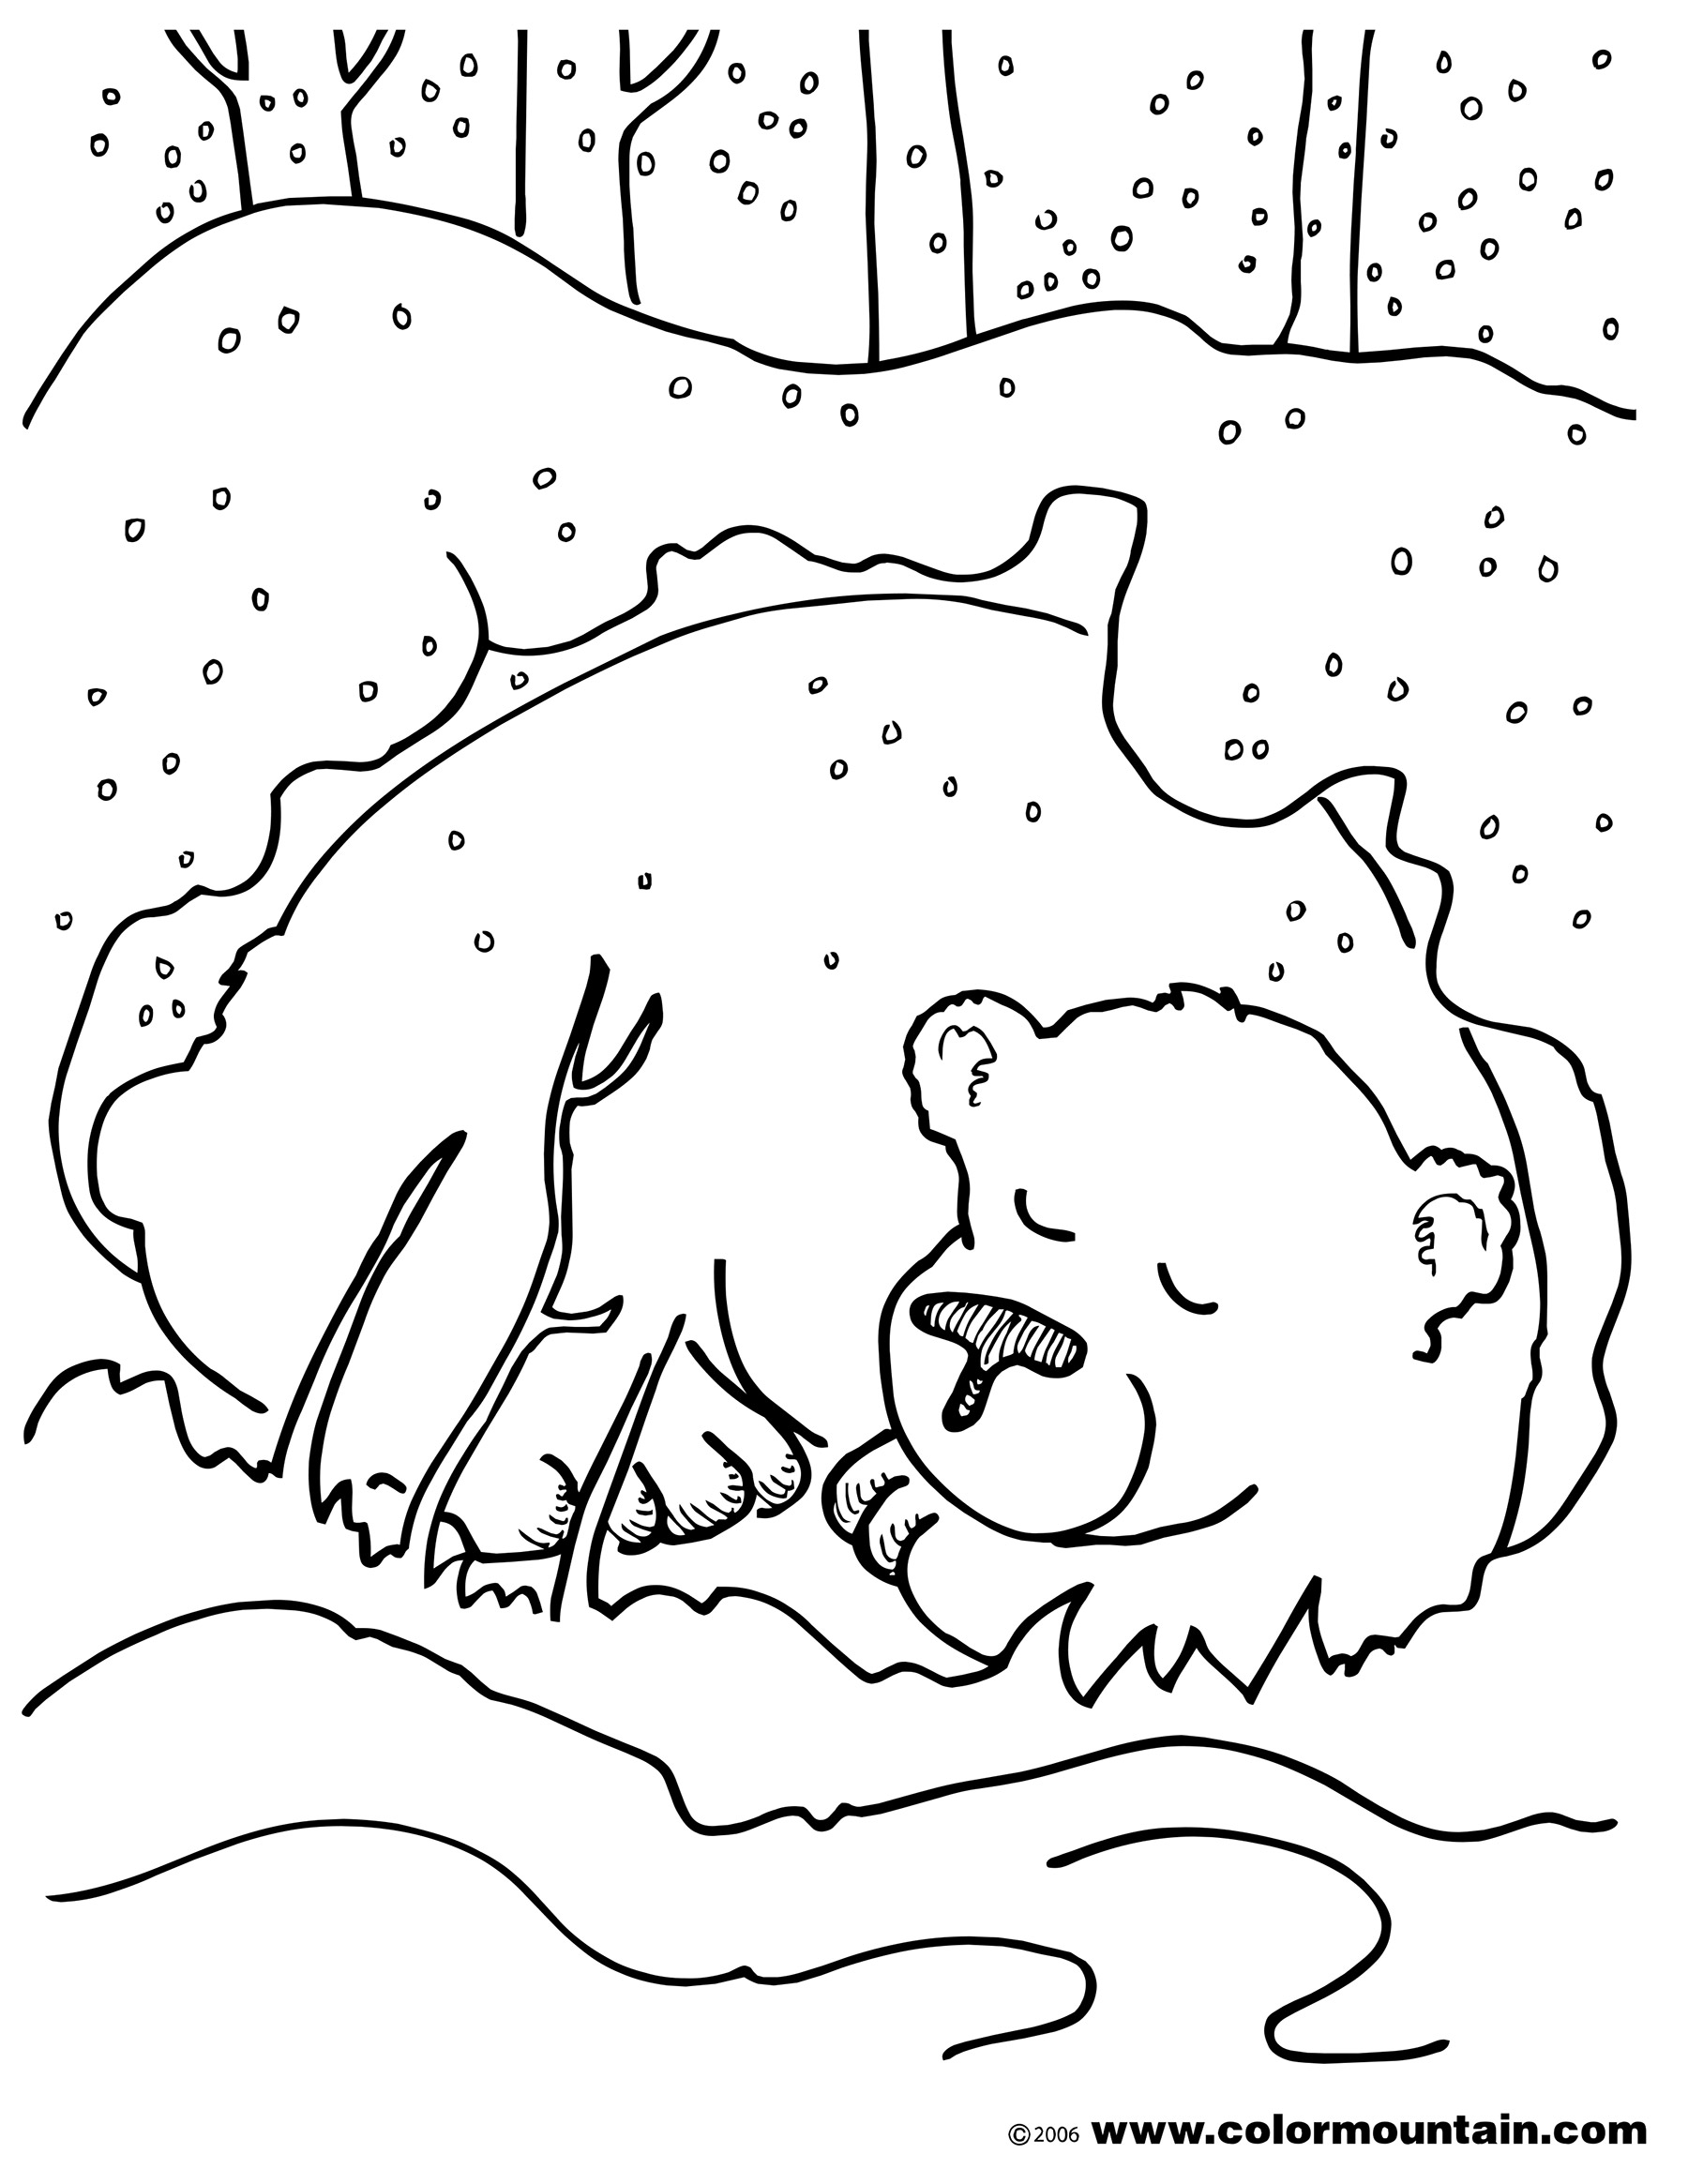 coloring pages of bears to print brown bear coloring pages download and print for free bears pages coloring of print to